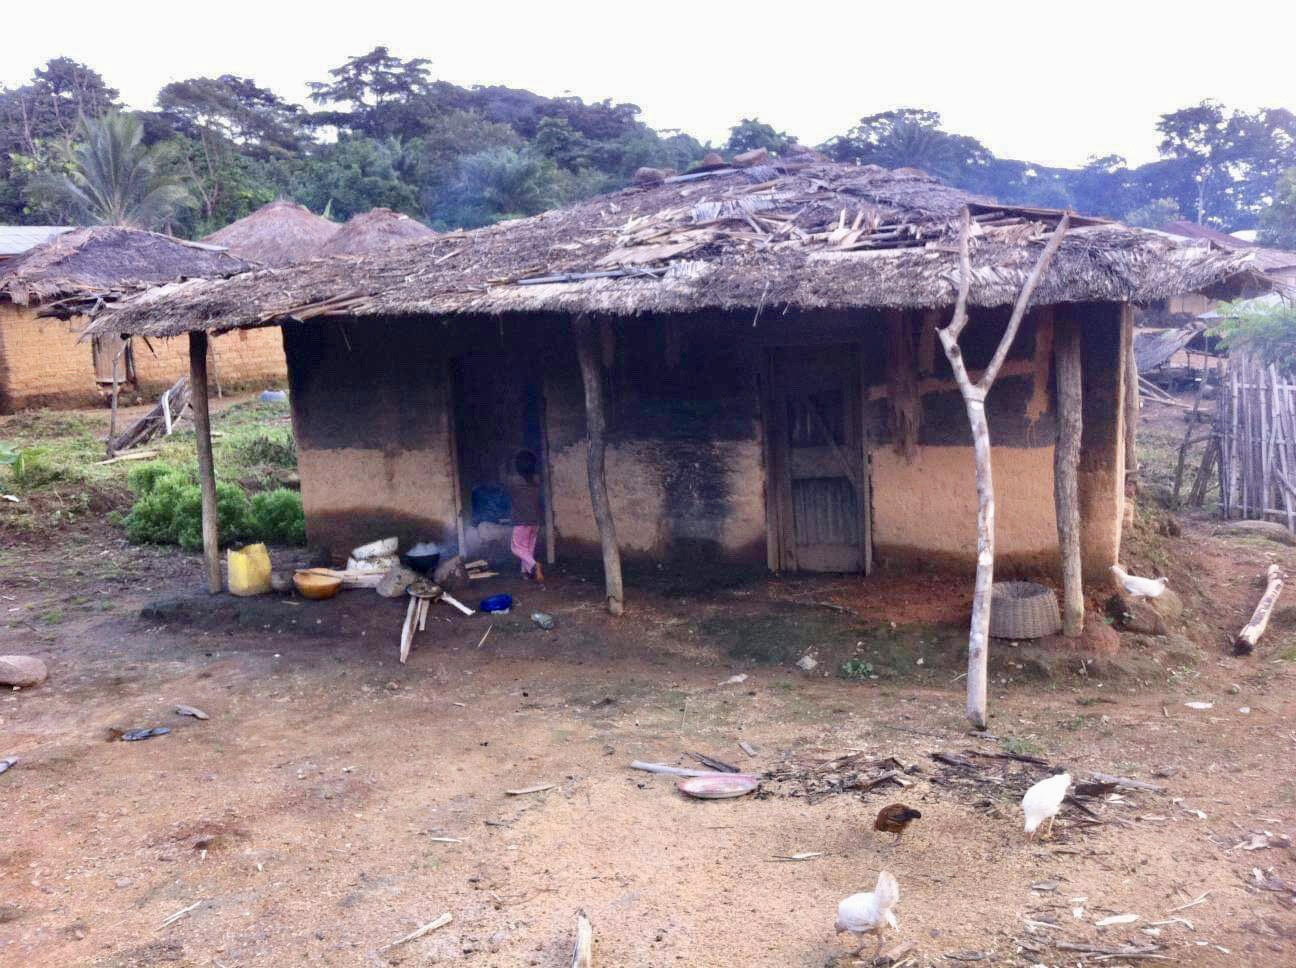 Moses's family home in village